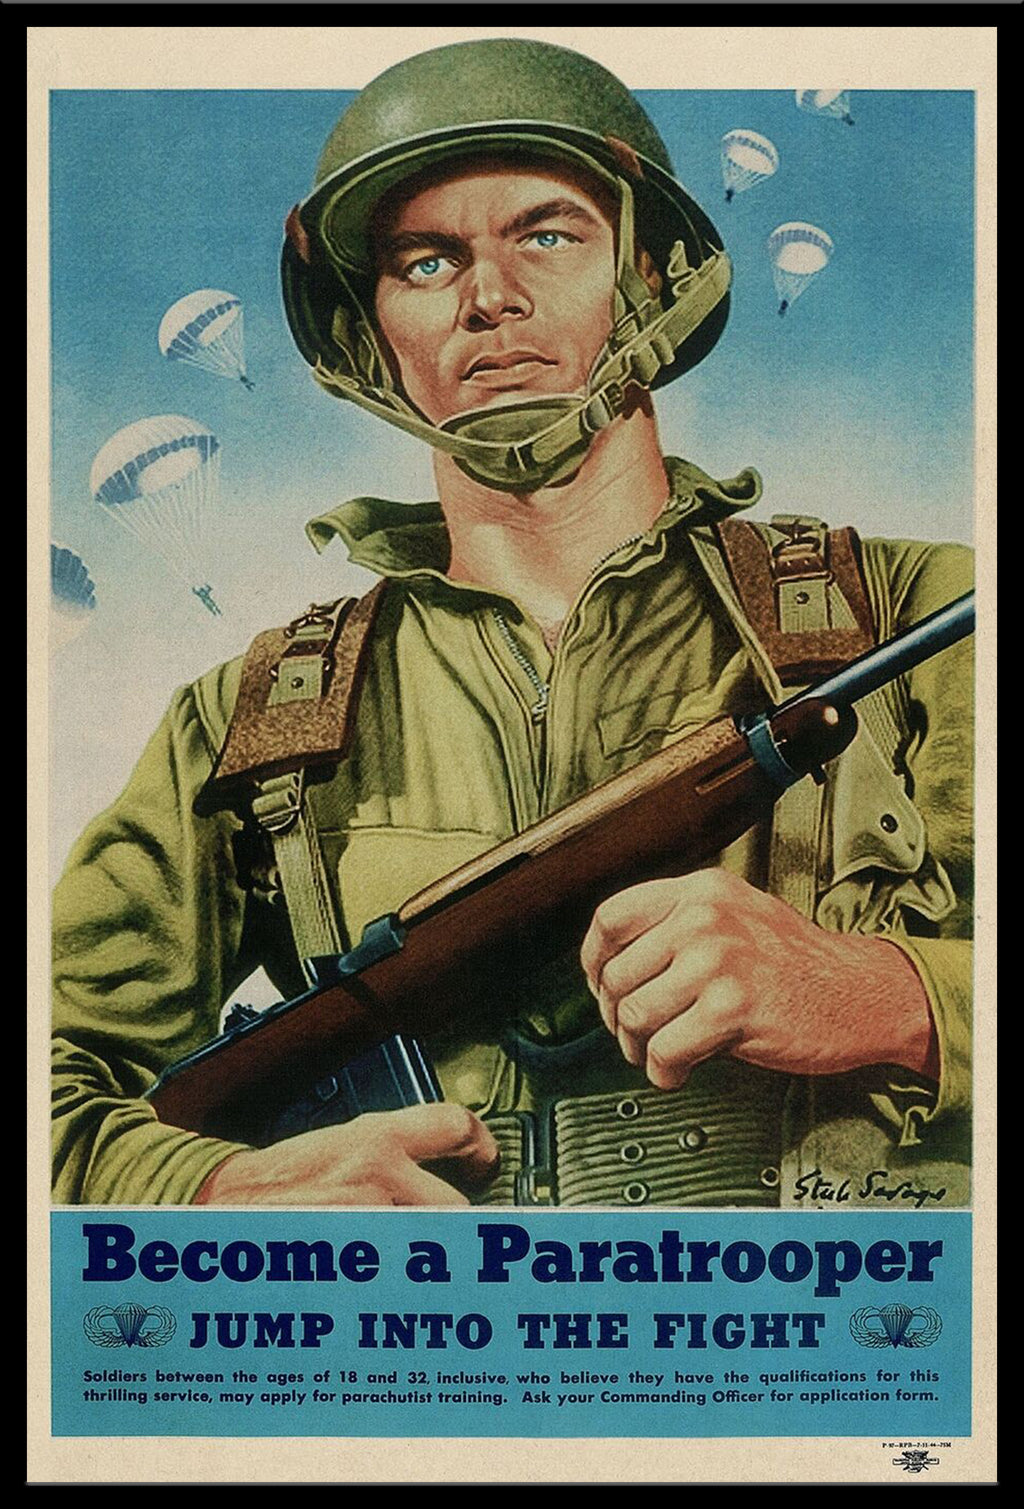 Become a Paratrooper - Jump into the Fight! poster reproduction.